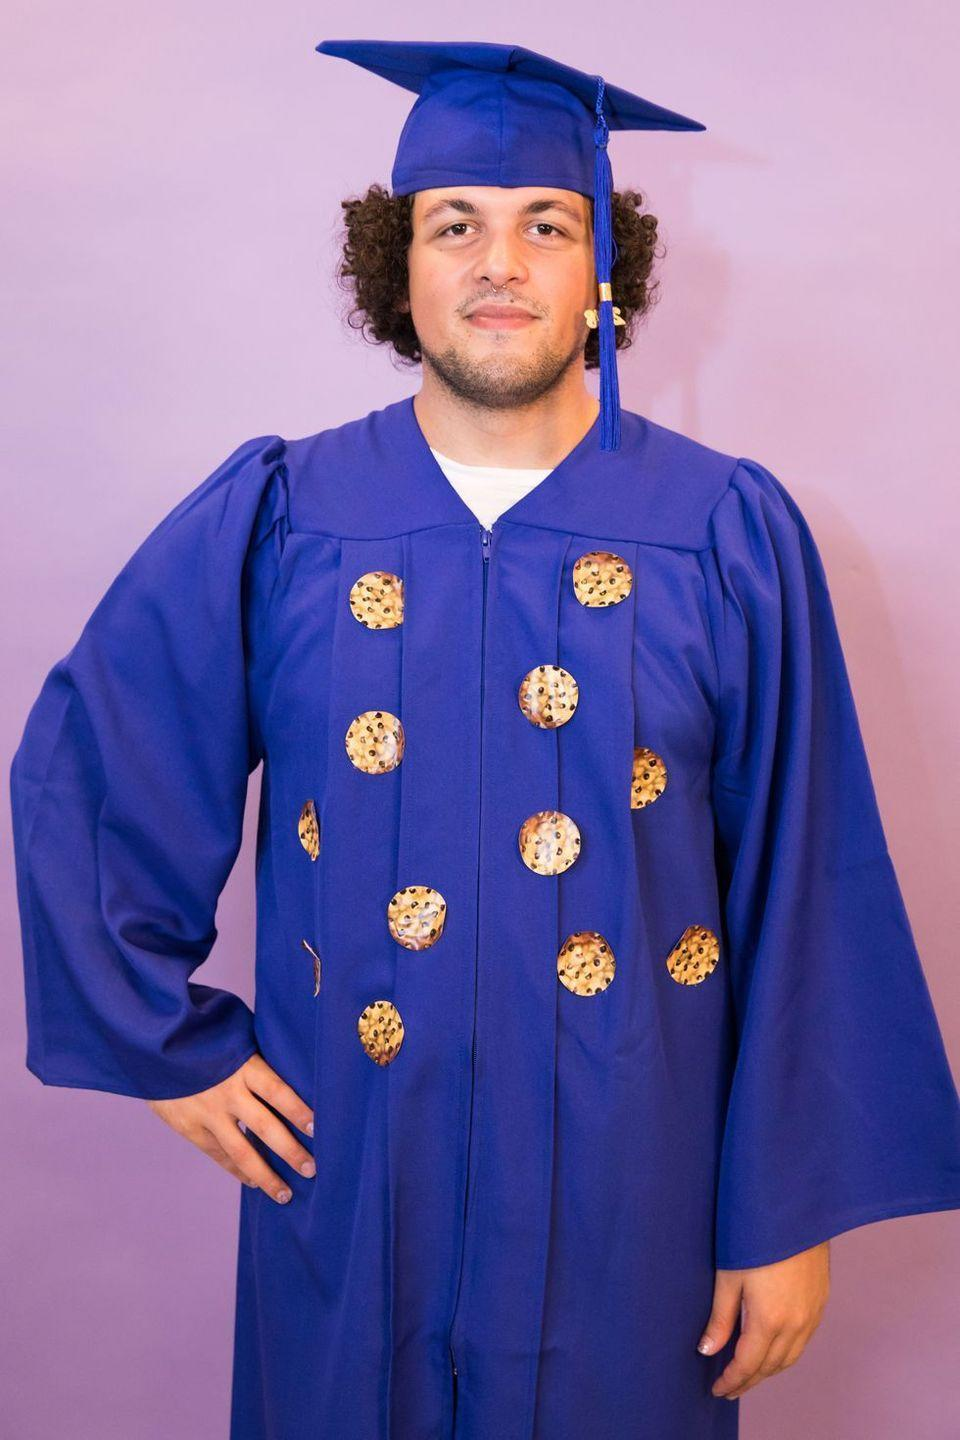 """<p>Your smarts extend beyond the kitchen, but let's face it, that's where your heart is. Show people what you're really made of — smarts and sweets — with this punny costume. Stick cookie cut-outs to an old graduation gown for an easy crowd-pleaser.</p><p><a class=""""link rapid-noclick-resp"""" href=""""https://www.amazon.com/GraduationMall-Graduation-Tassel-School-Bachelor/dp/B00R9EZWI0/?tag=syn-yahoo-20&ascsubtag=%5Bartid%7C10055.g.28089320%5Bsrc%7Cyahoo-us"""" rel=""""nofollow noopener"""" target=""""_blank"""" data-ylk=""""slk:SHOP GRADUATION GOWNS"""">SHOP GRADUATION GOWNS</a></p><p><strong>RELATED: </strong><a href=""""https://www.goodhousekeeping.com/holidays/halloween-ideas/g1709/homemade-halloween-costumes/"""" rel=""""nofollow noopener"""" target=""""_blank"""" data-ylk=""""slk:Homemade Halloween Costumes for Everyone"""" class=""""link rapid-noclick-resp"""">Homemade Halloween Costumes for Everyone</a></p>"""